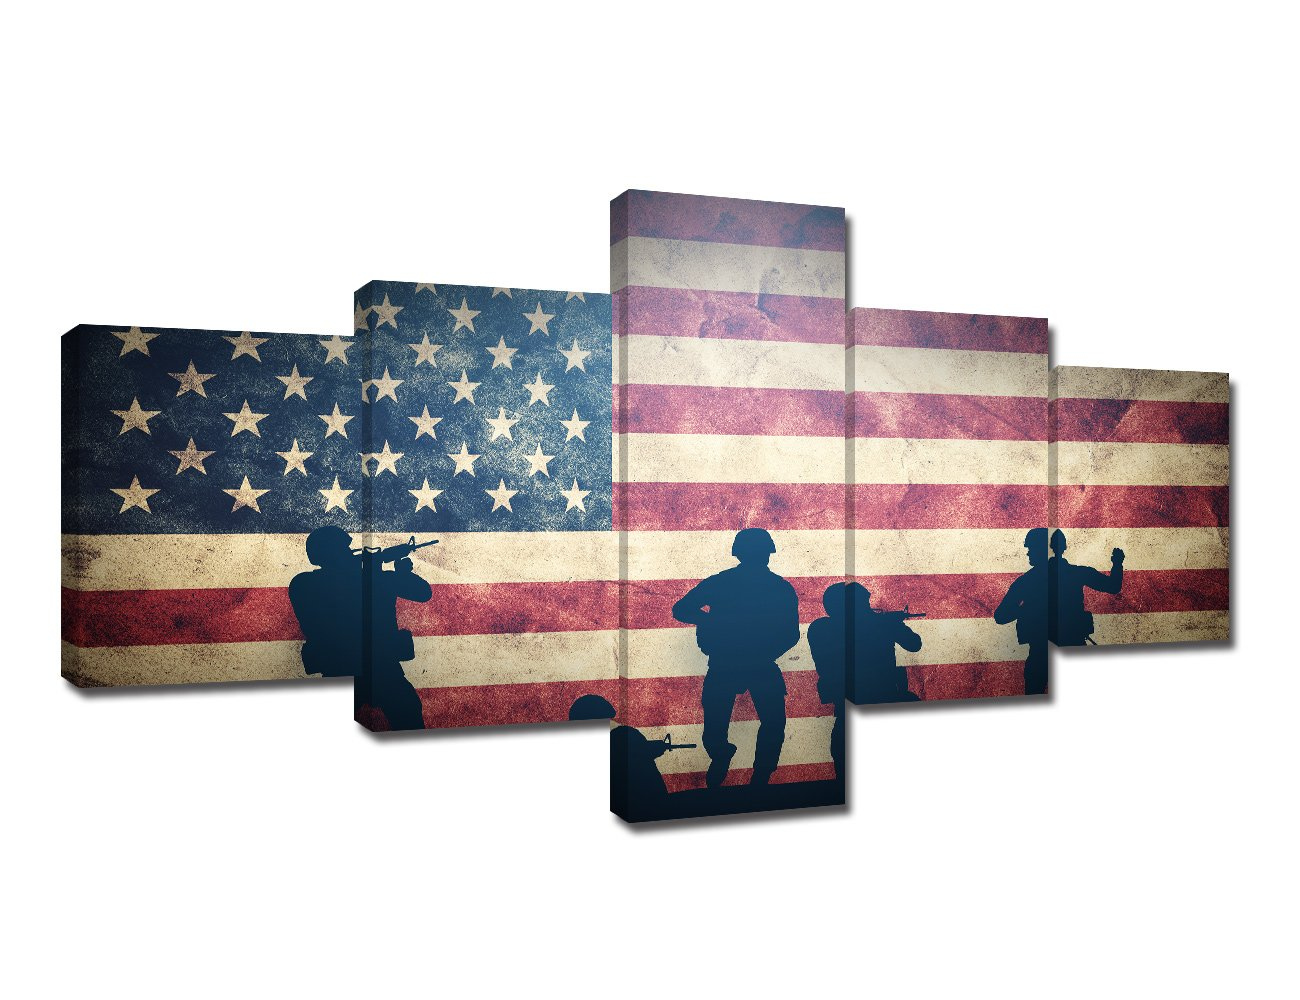 TUMOVO Military Wall Art American Soldier Pictures US Grunge Flag Paintings 5 Piece Canvas Modern Artwork Home Decor for Living Room Giclee Framed Gallery-Wrapped Stretched Ready to Hang(50''Wx24''H)